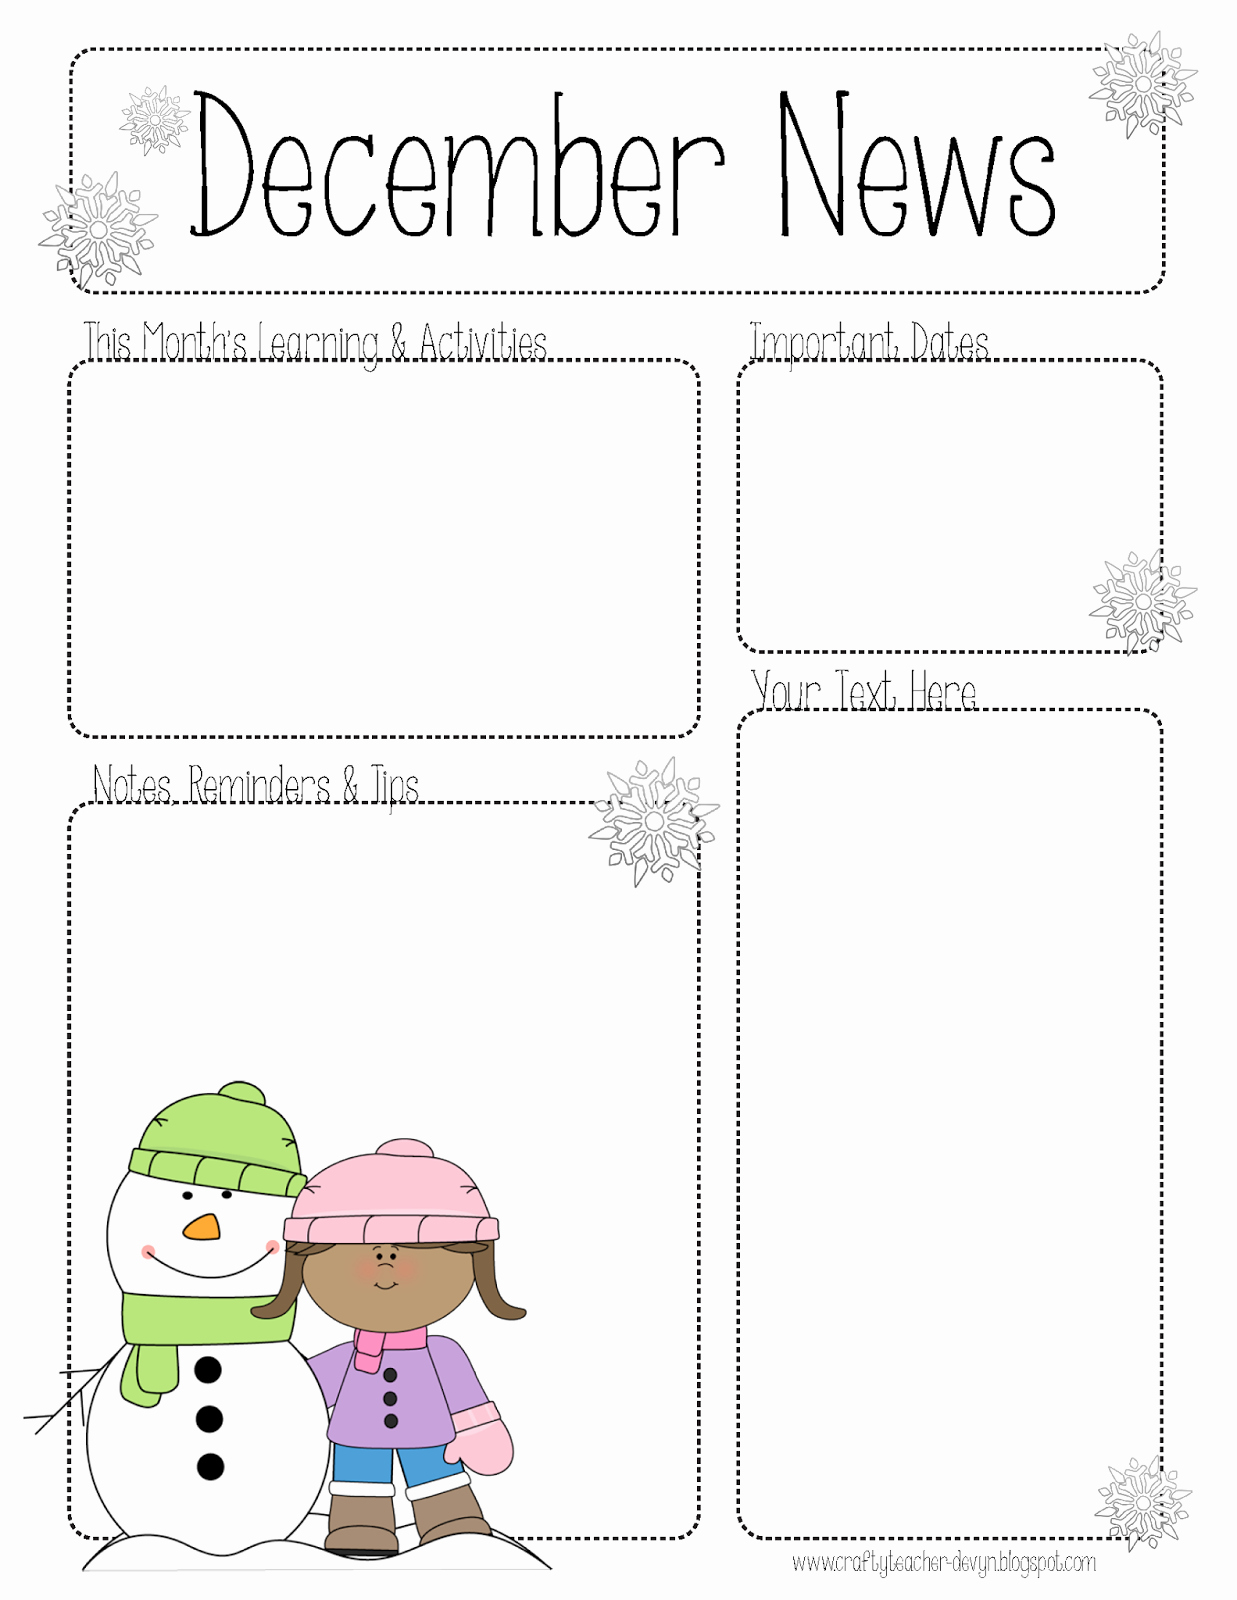 Preschool Newsletter Template Free Beautiful the Crafty Teacher December Newsletter for All Grades